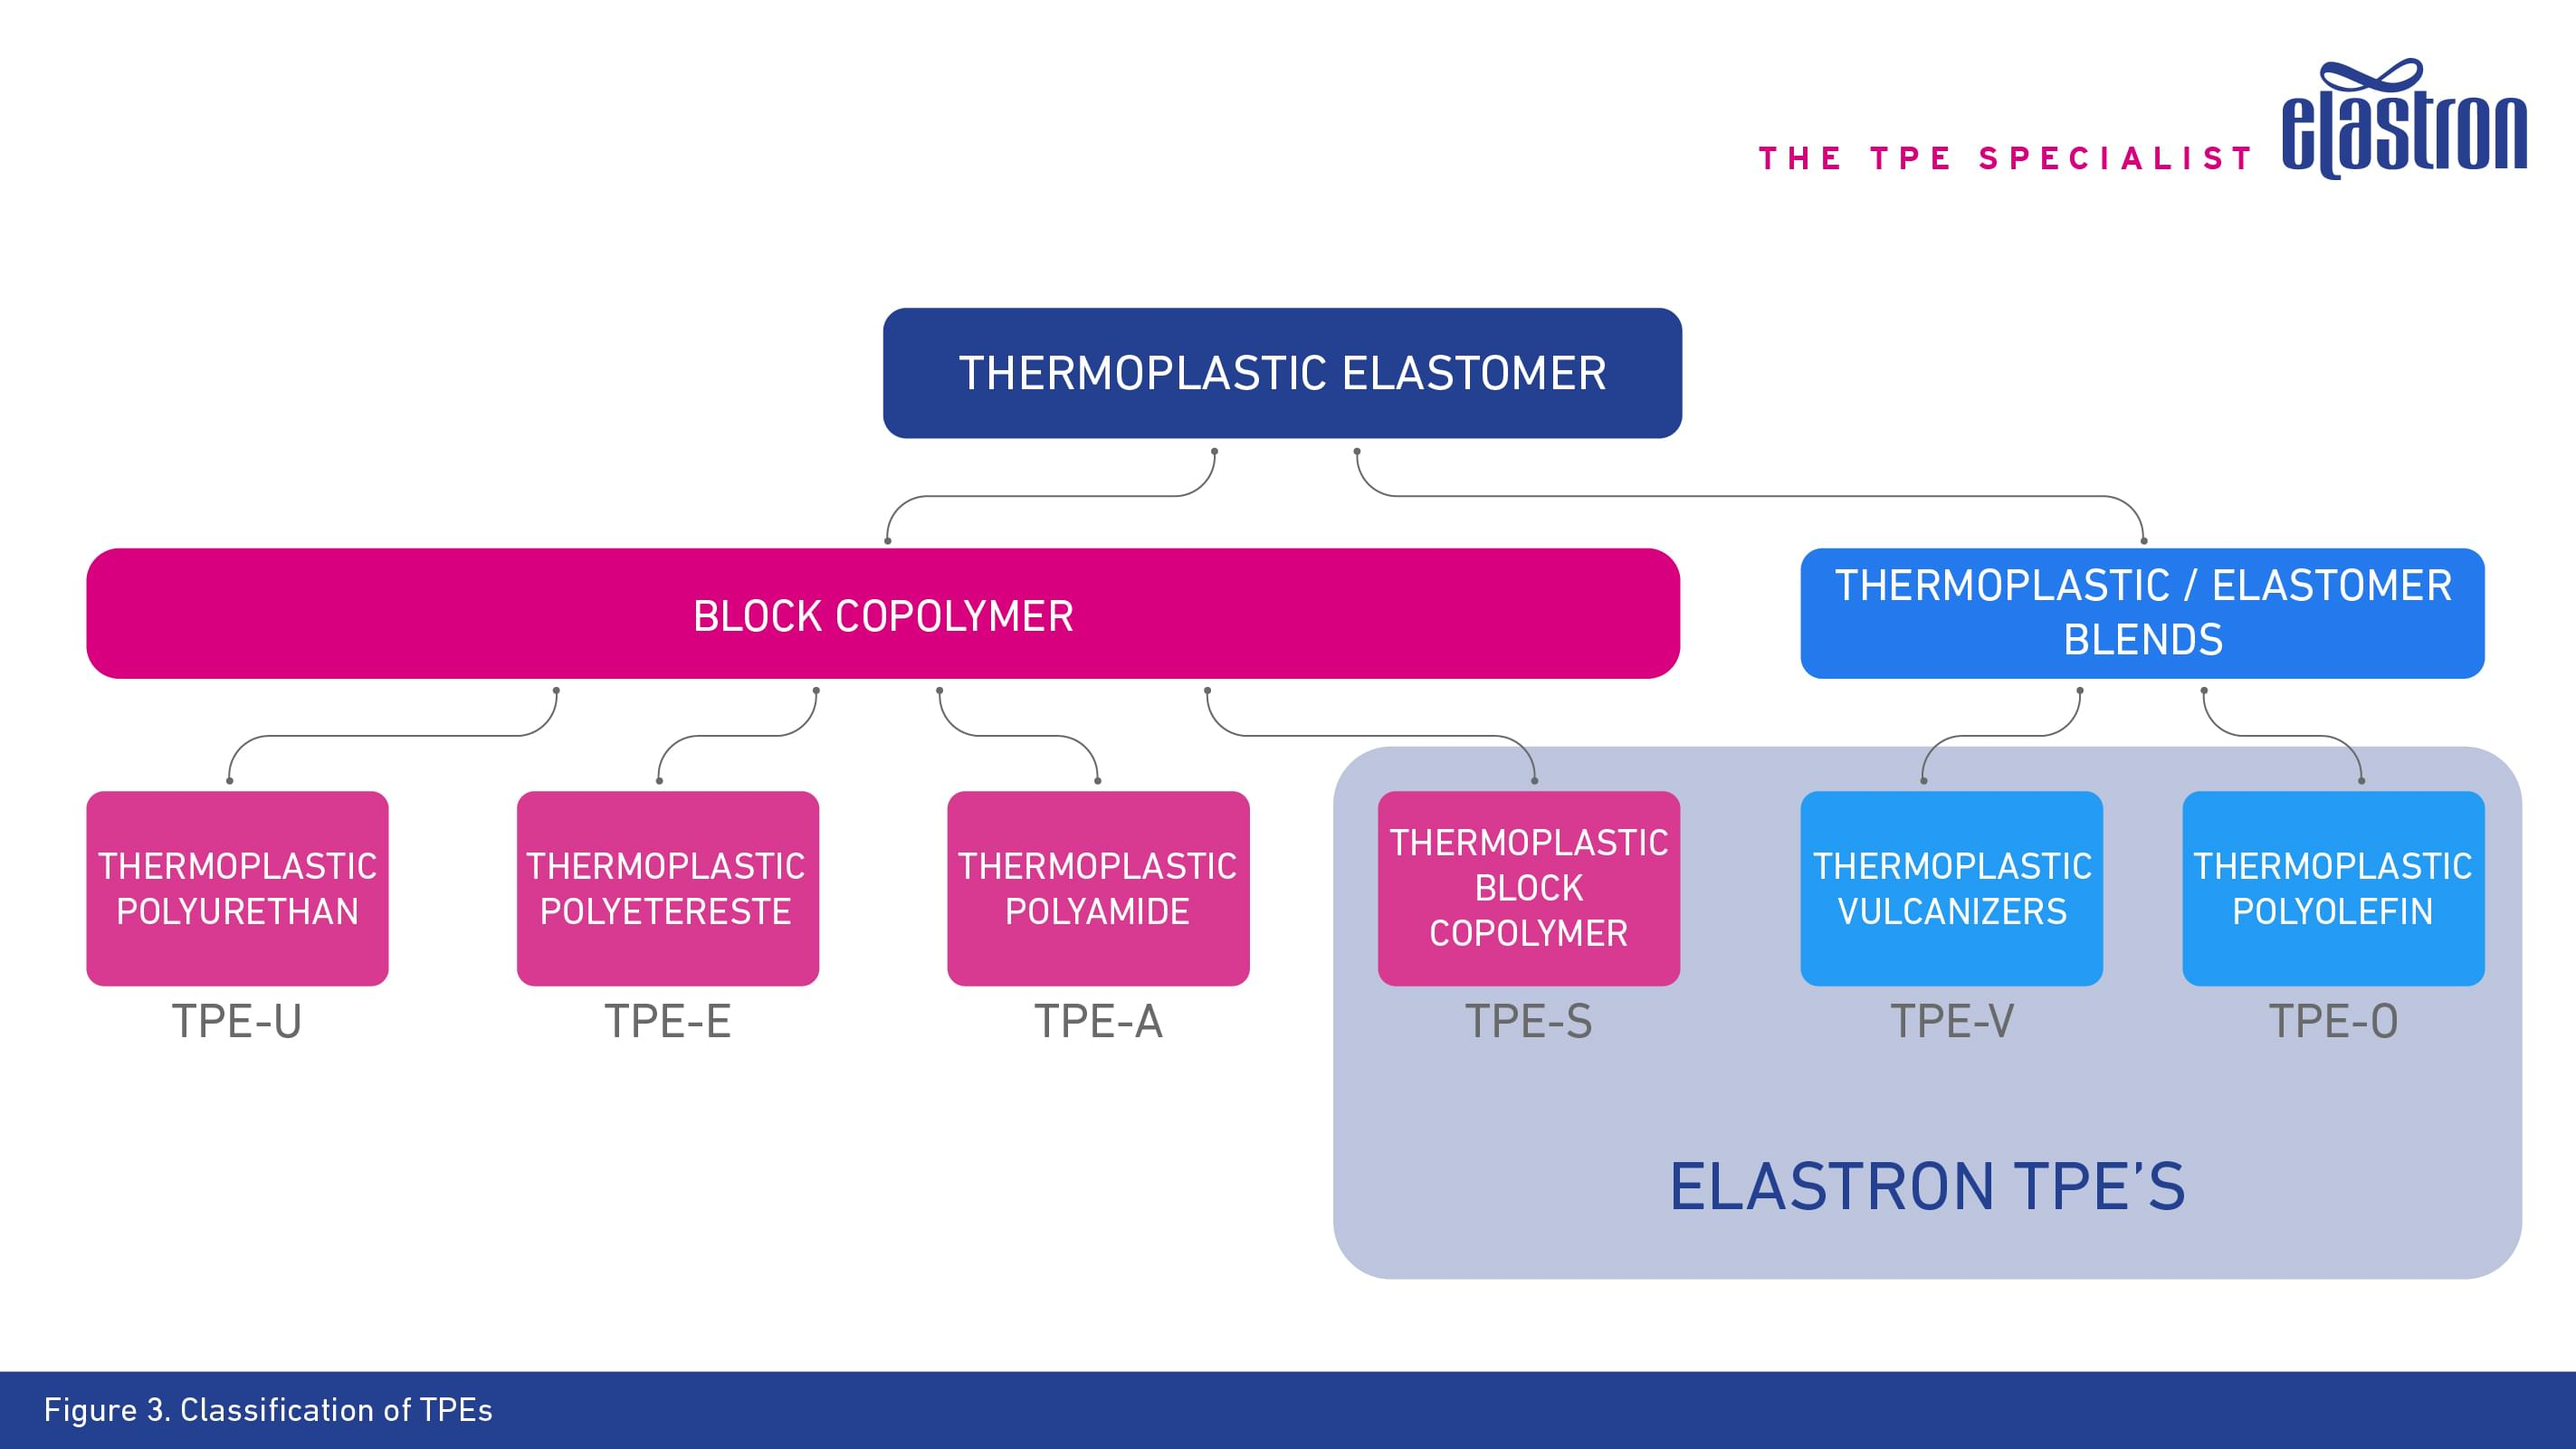 Classification of TPEs